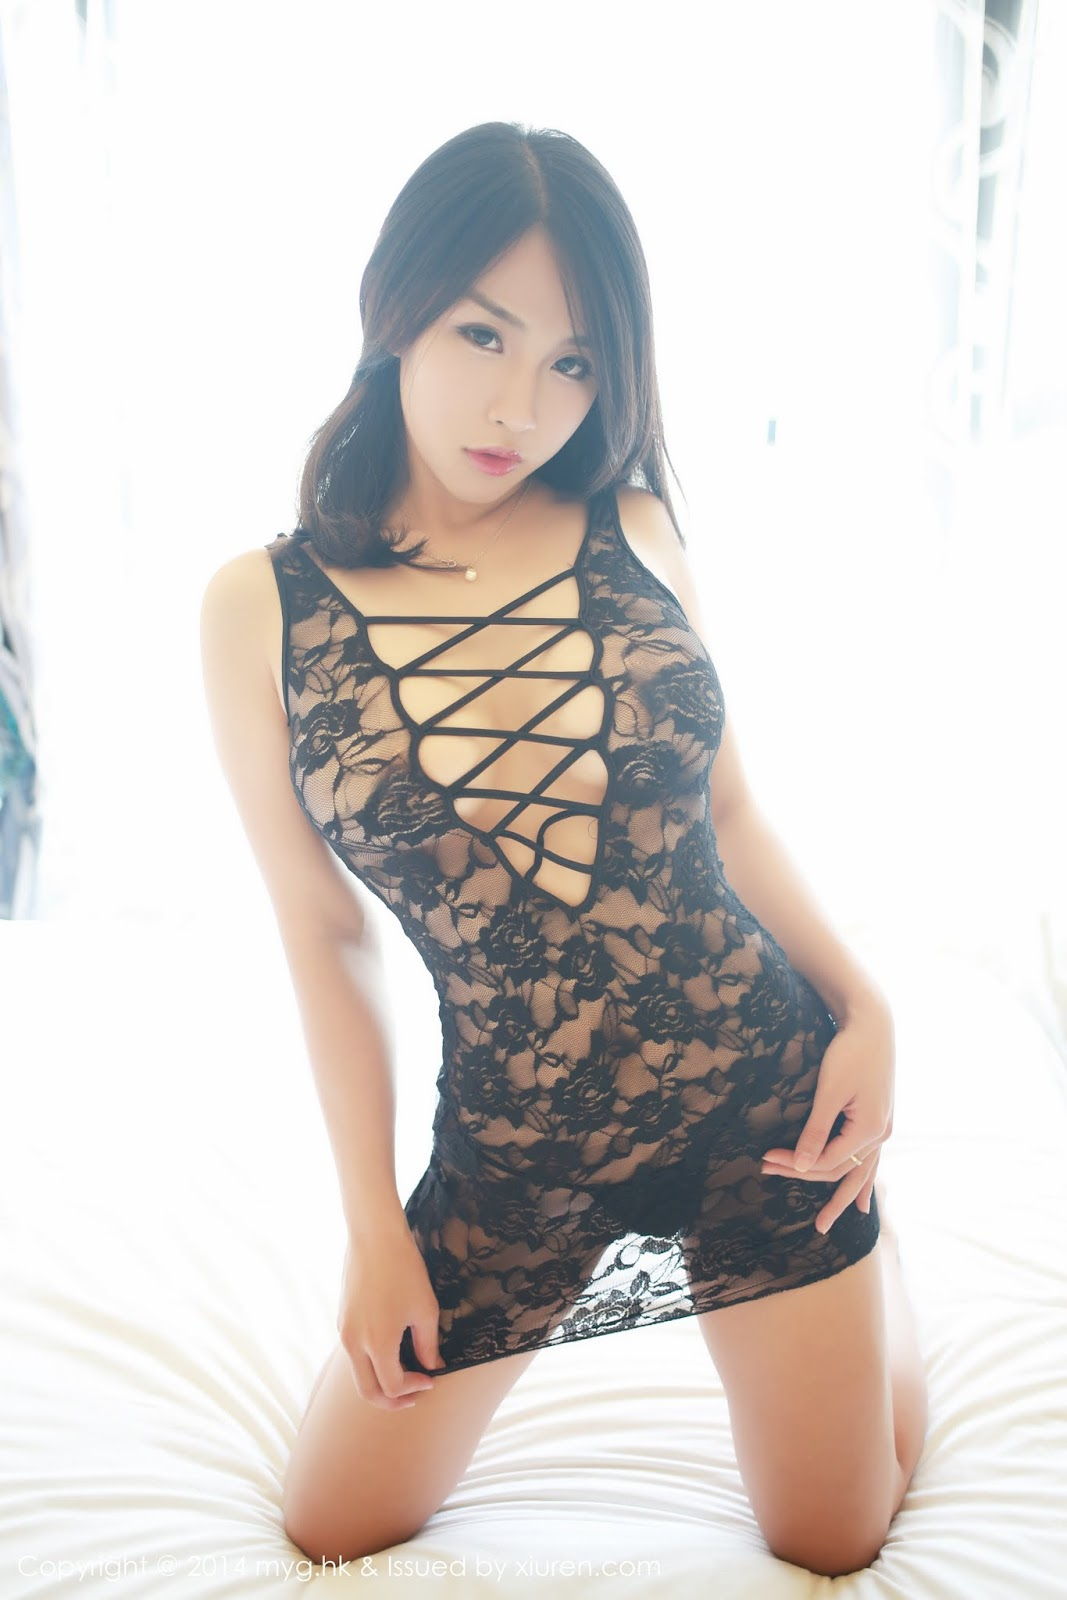 0031 - Beautiful Naked Girl Model MYGIRL VOL.35